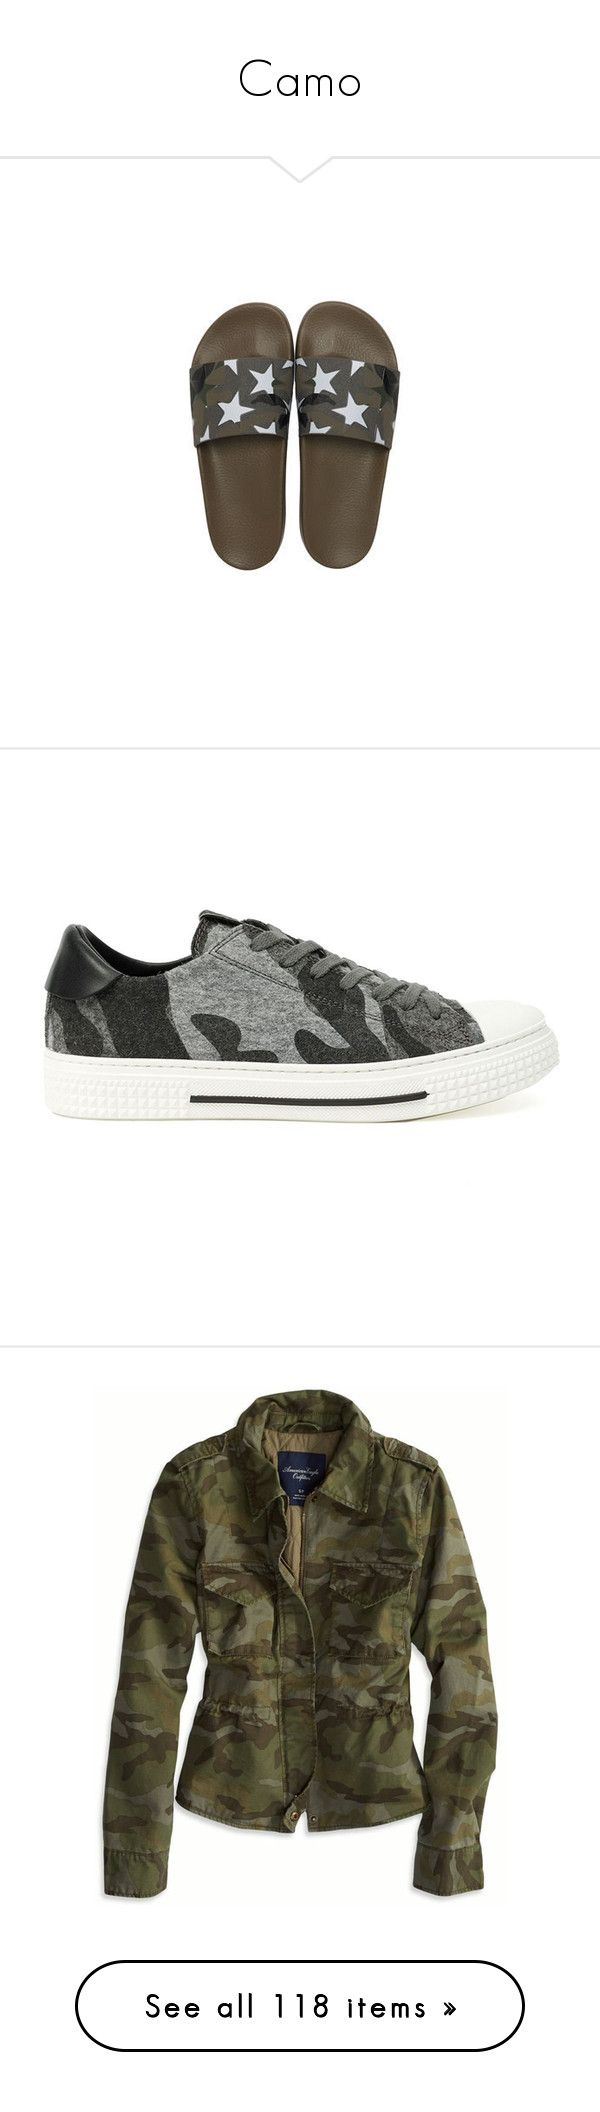 """Camo"" by missy-smallen ❤ liked on Polyvore featuring men's fashion, men's shoes, men's sandals, mens rubber shoes, valentino mens shoes, mens leopard print shoes, shoes, sneakers, grey and gray shoes"